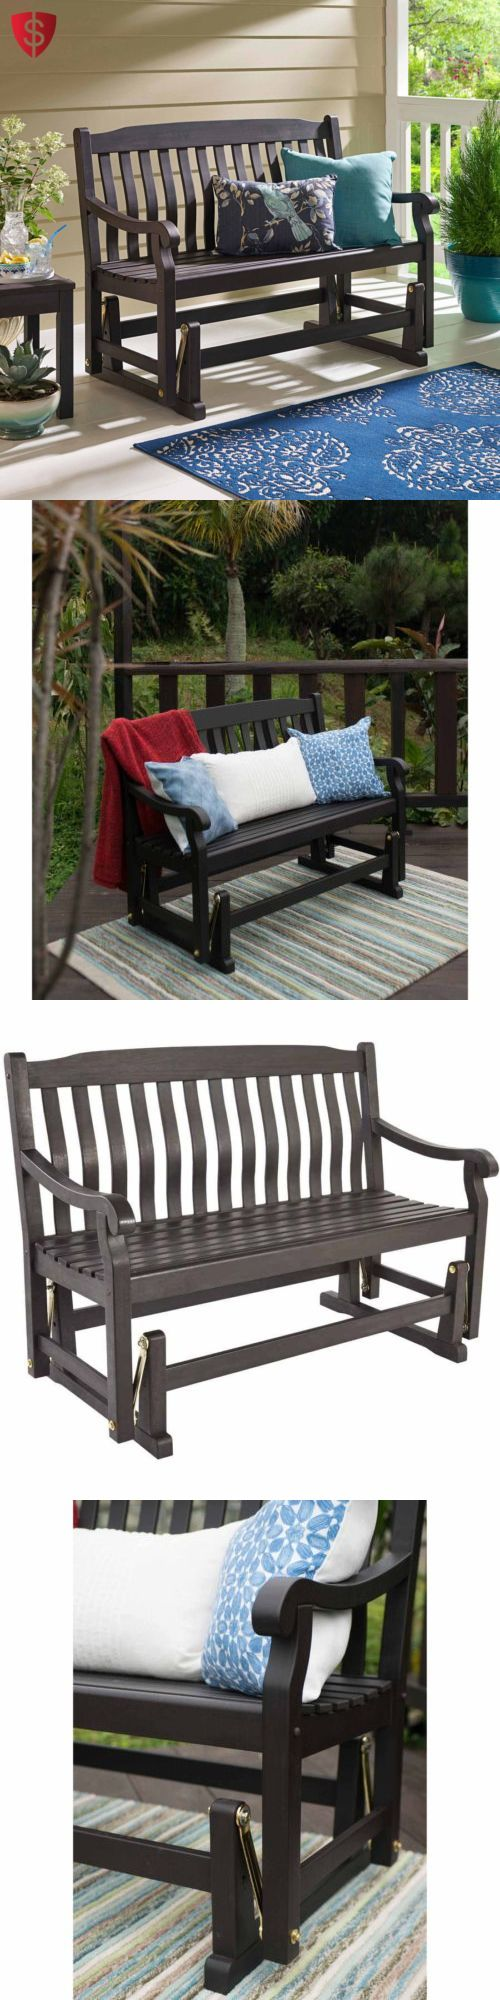 Benches 79678: Wood Bench Outdoor Garden Porch Seat Yard Furniture Glider Chair Patio Brown -> BUY IT NOW ONLY: $969.99 on eBay!